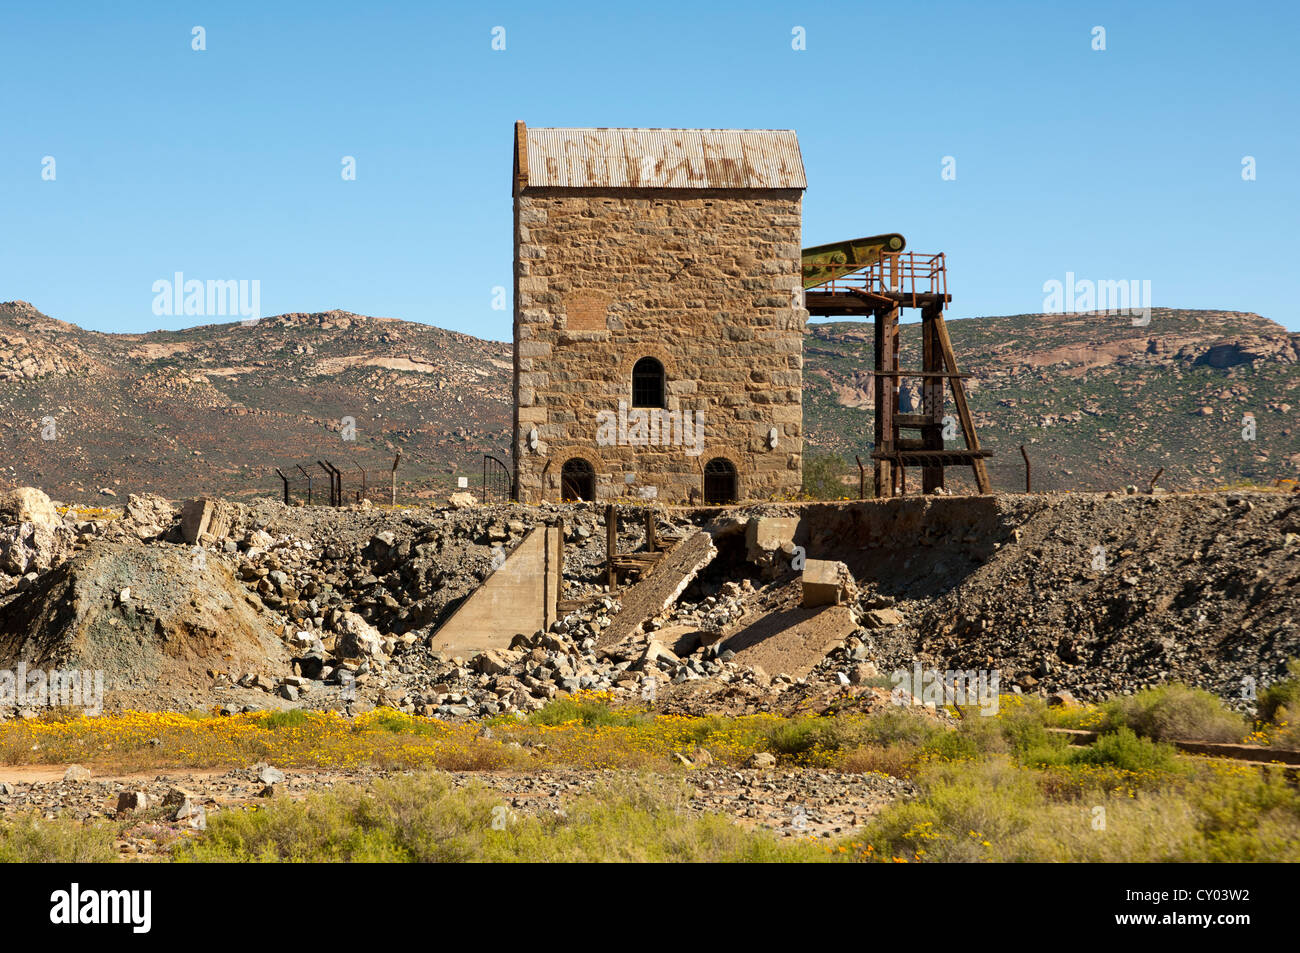 Building for a steam-powered water pump at the abandoned copper mine of Okiep, cultural heritage, Northern Cape Stock Photo